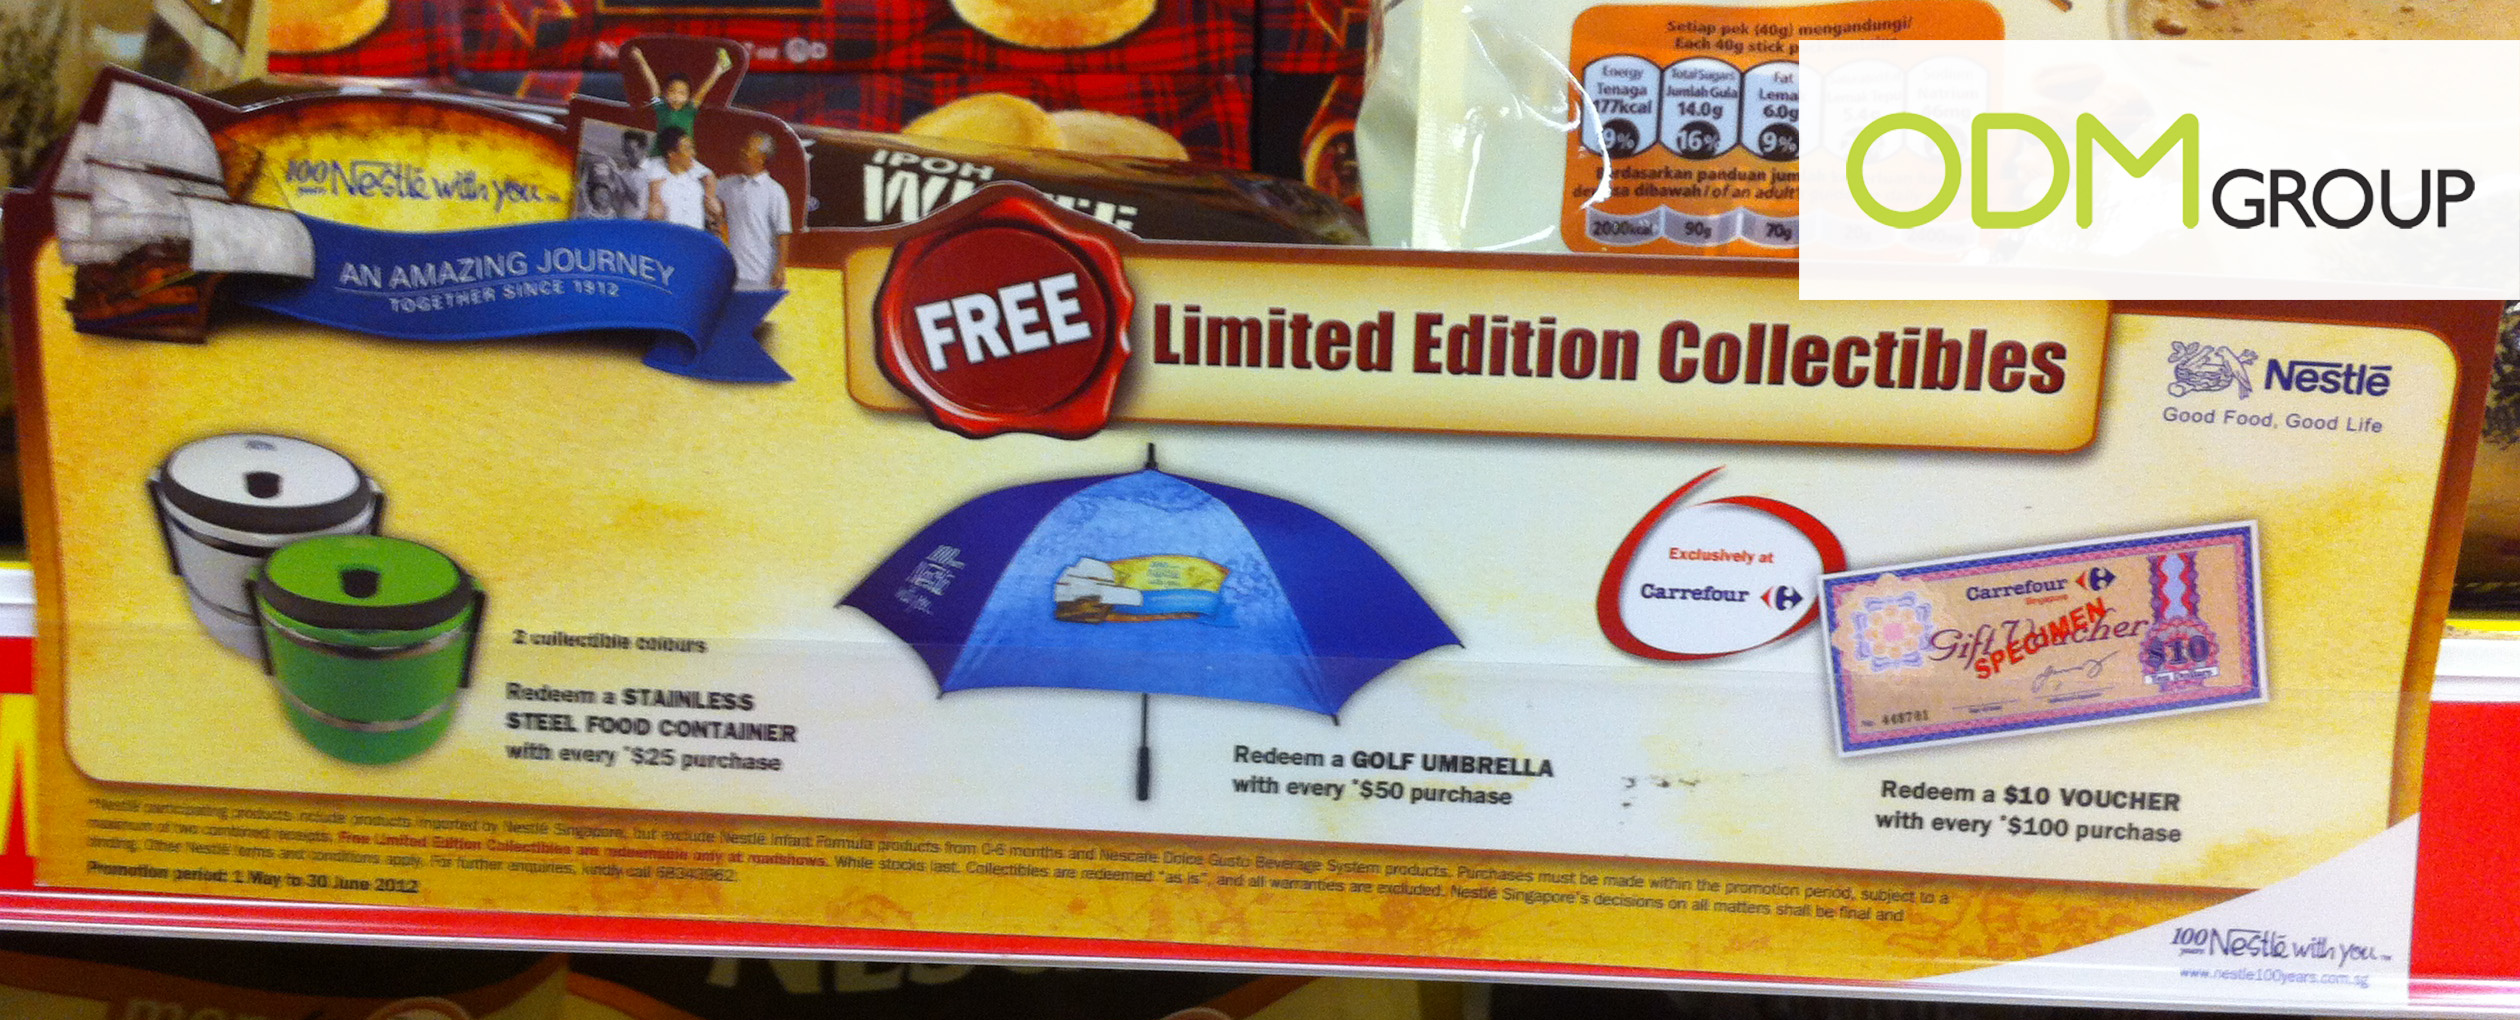 Promotional Gift Singapore - Nestle Limited Edition Collectibles